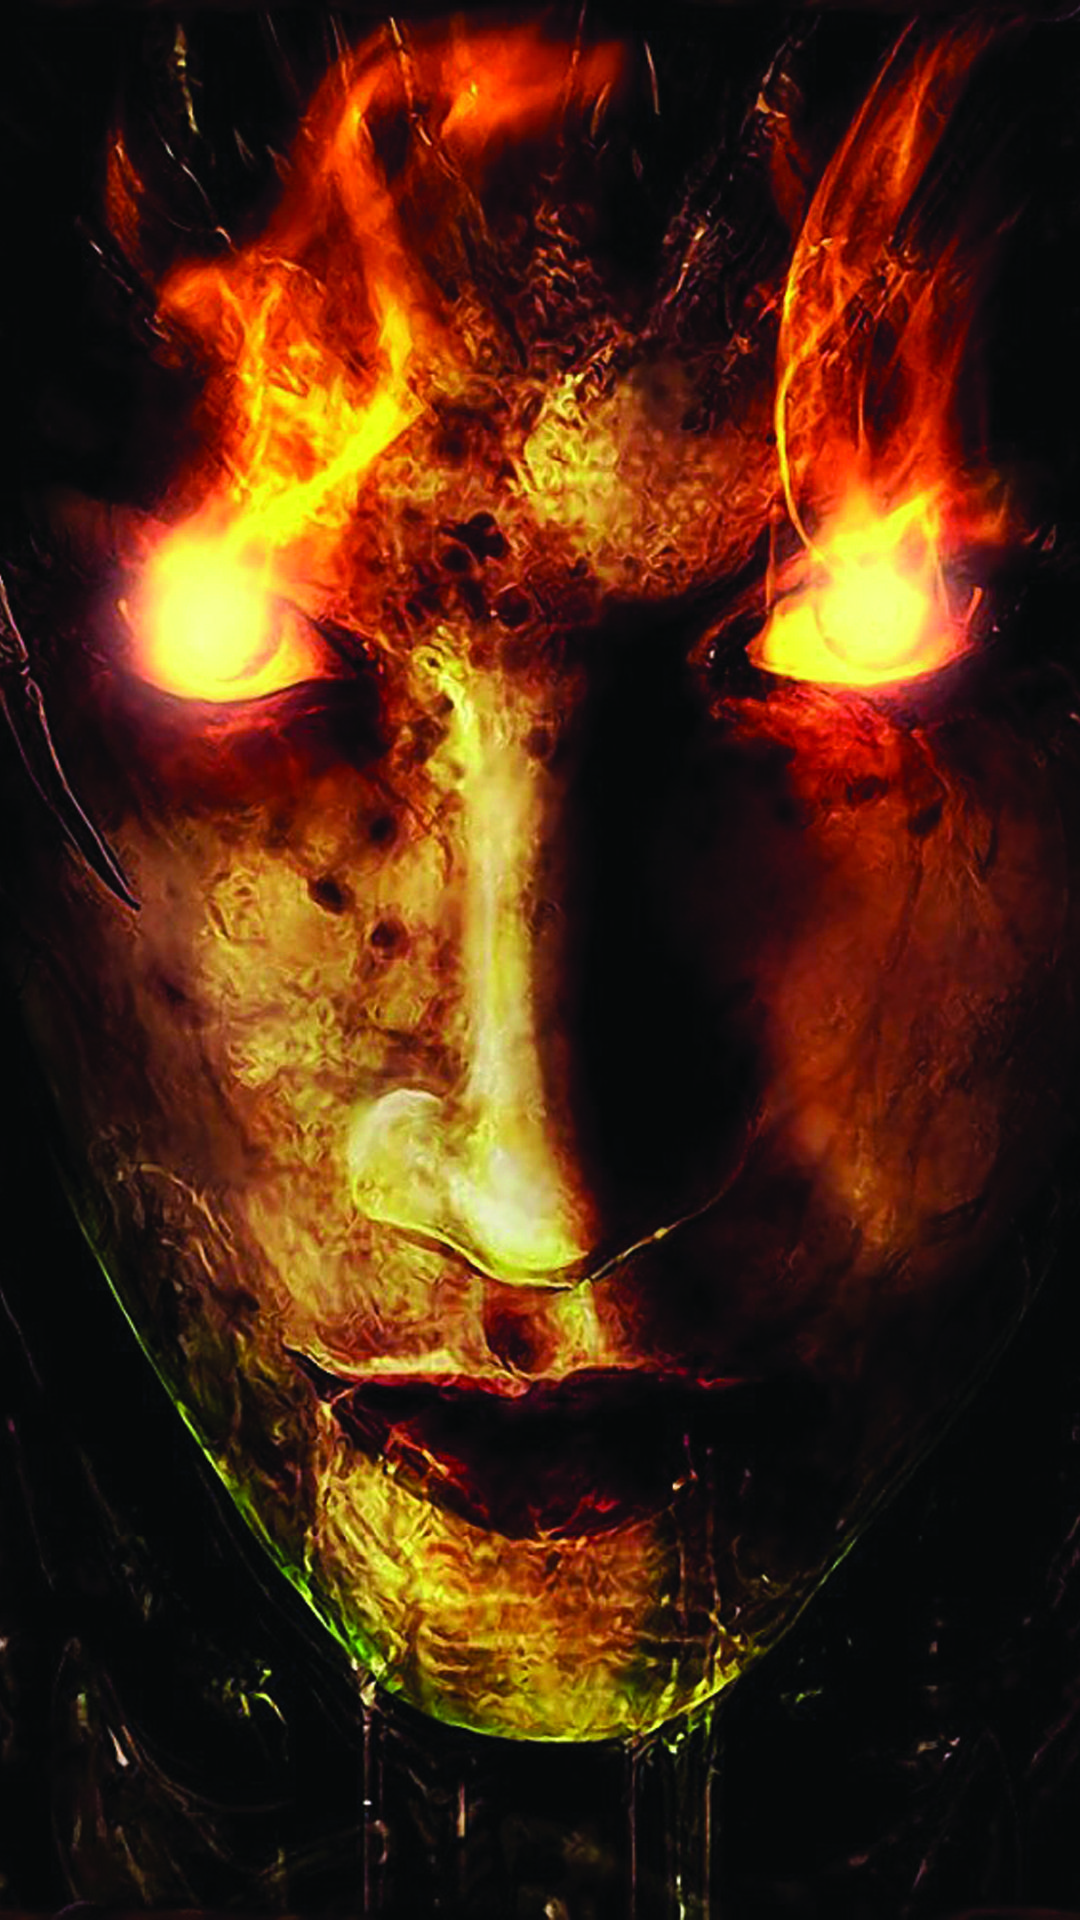 1080x1920 Fire Demon Glowing Eyes Halloween Android Wallpaper free ...